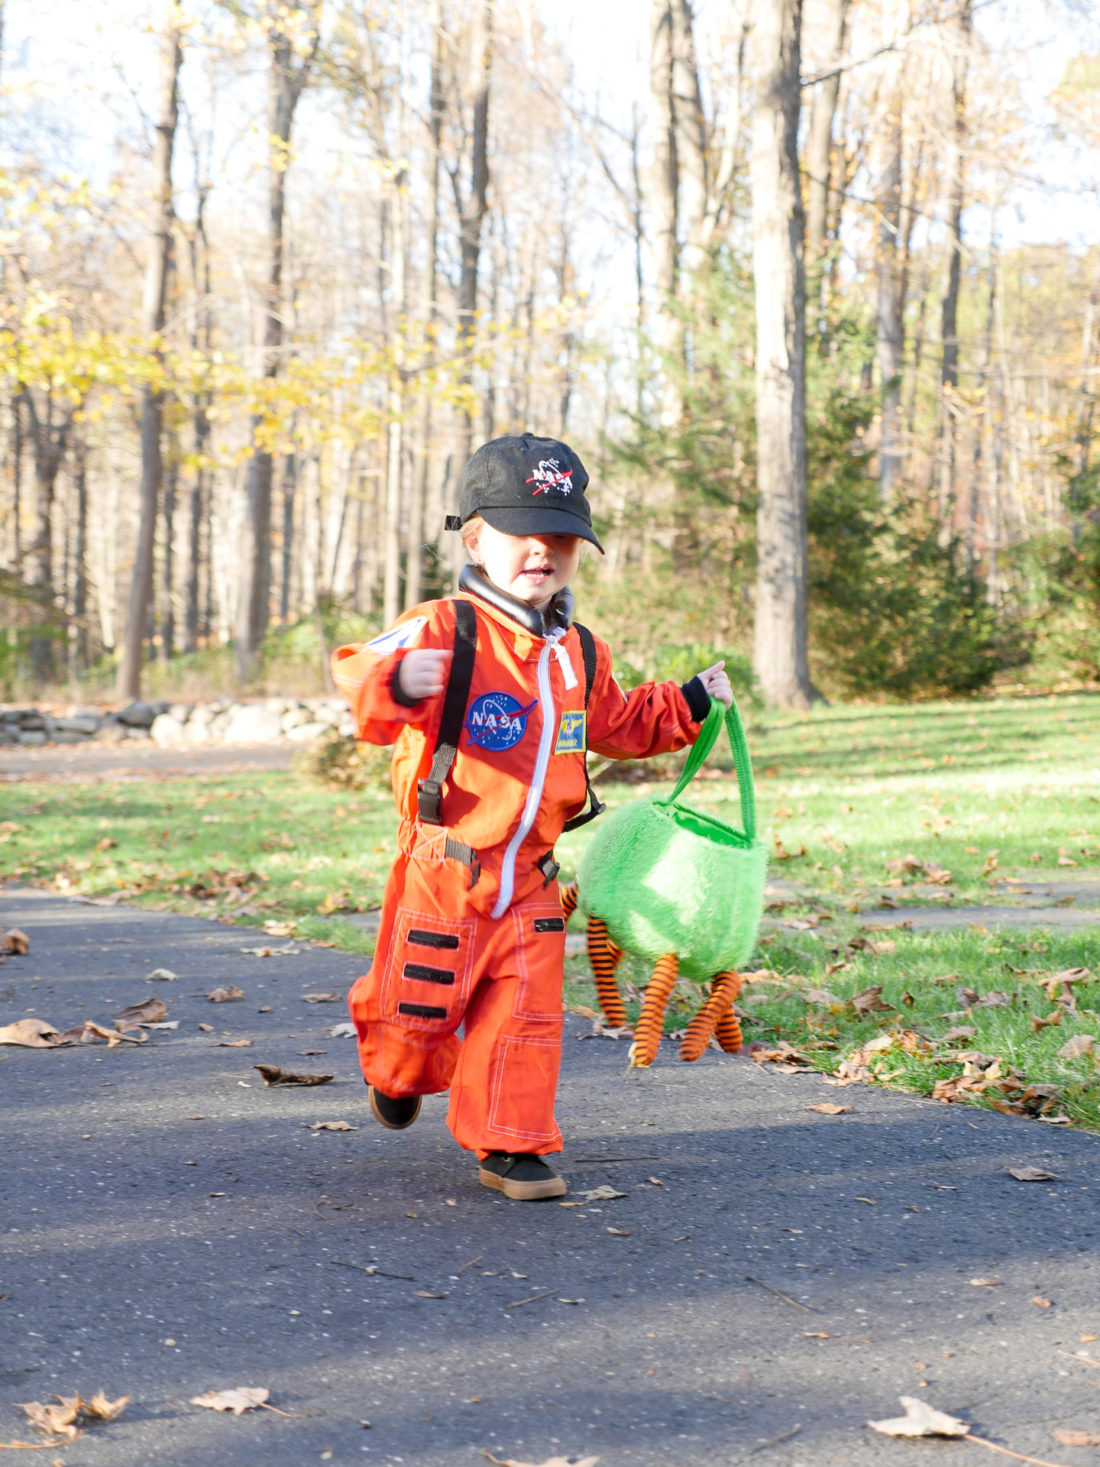 Marlowe Martino dressed as an Astronaut for Halloween